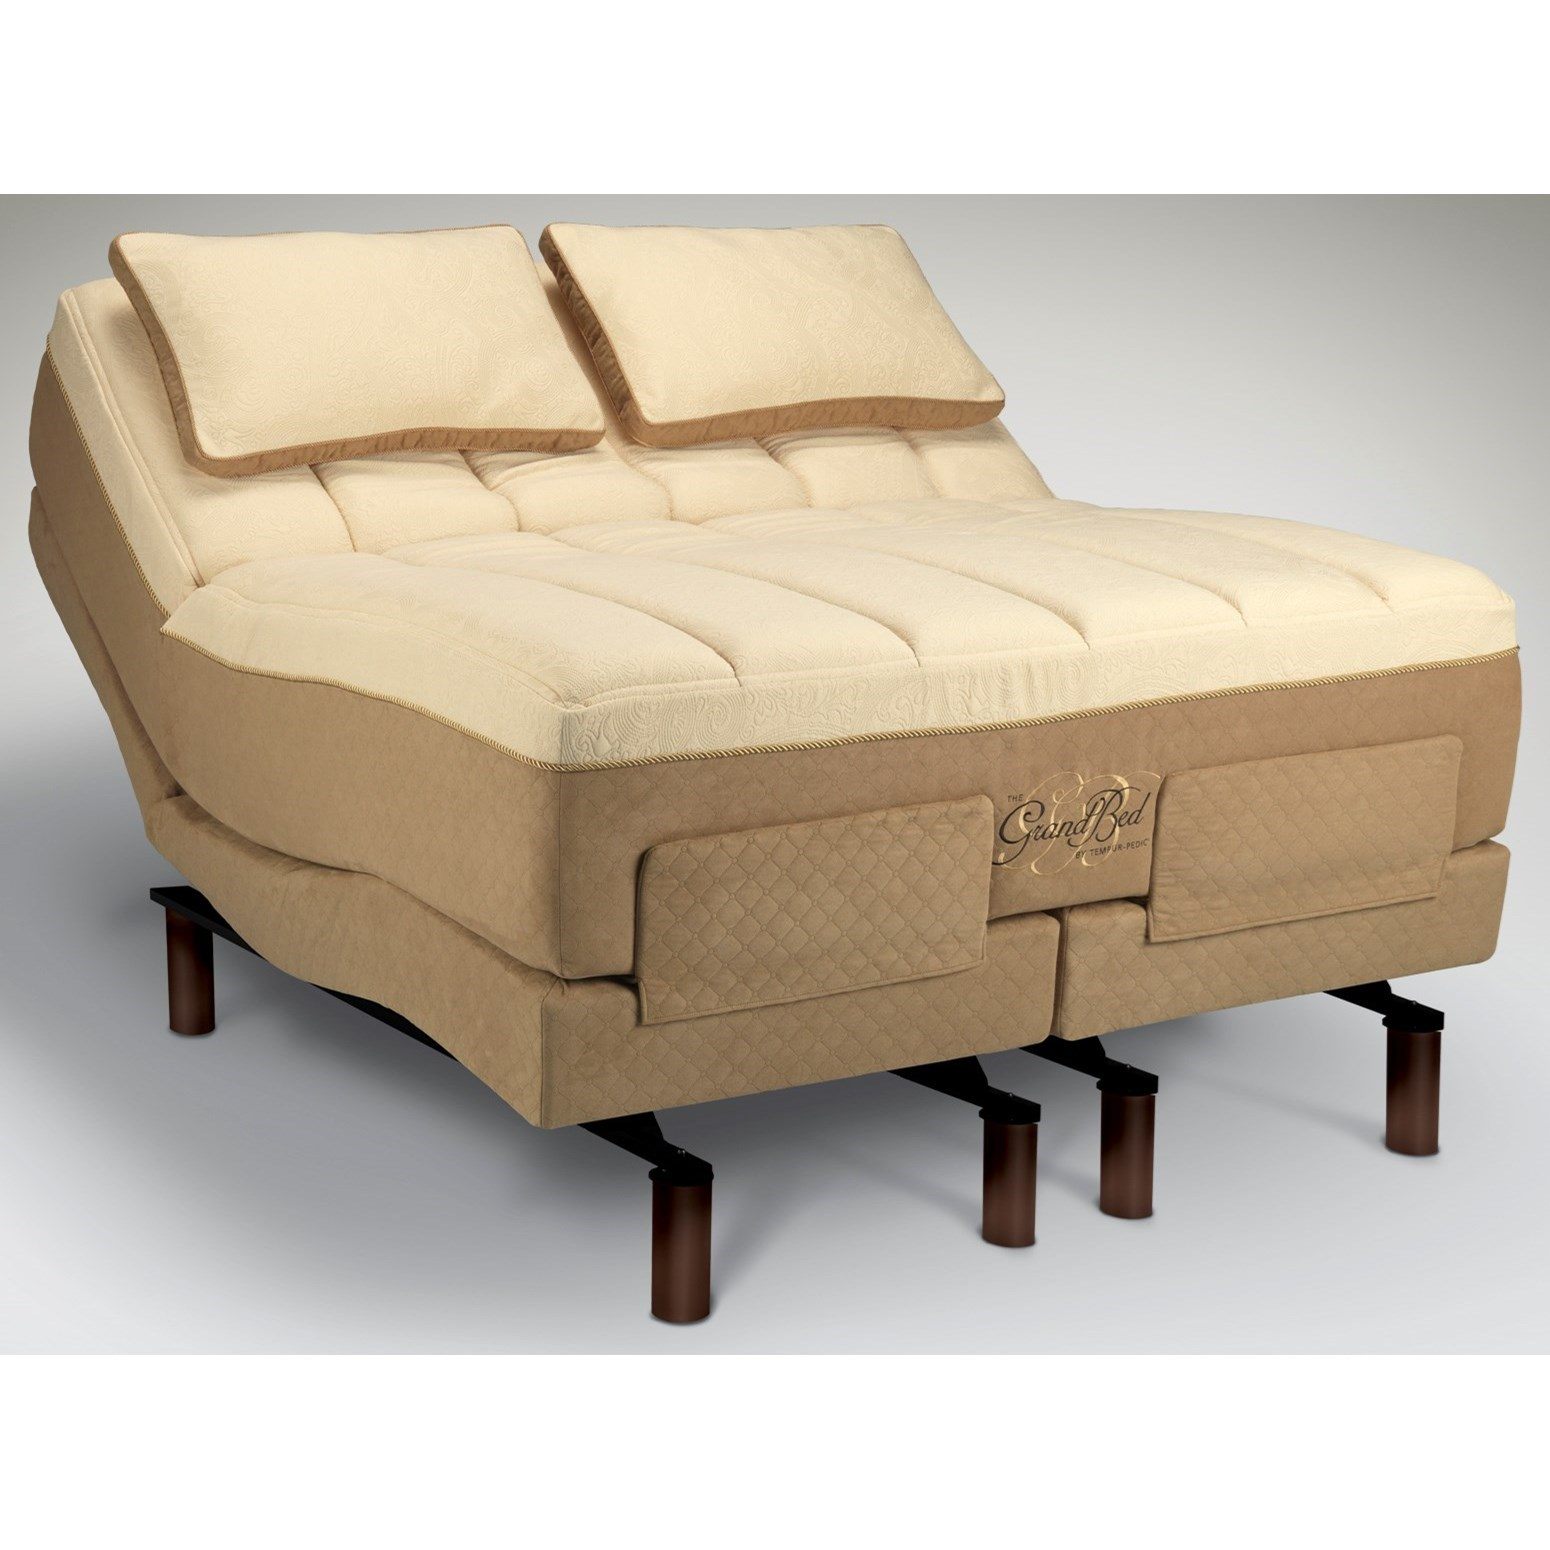 Grand King Mattress Set